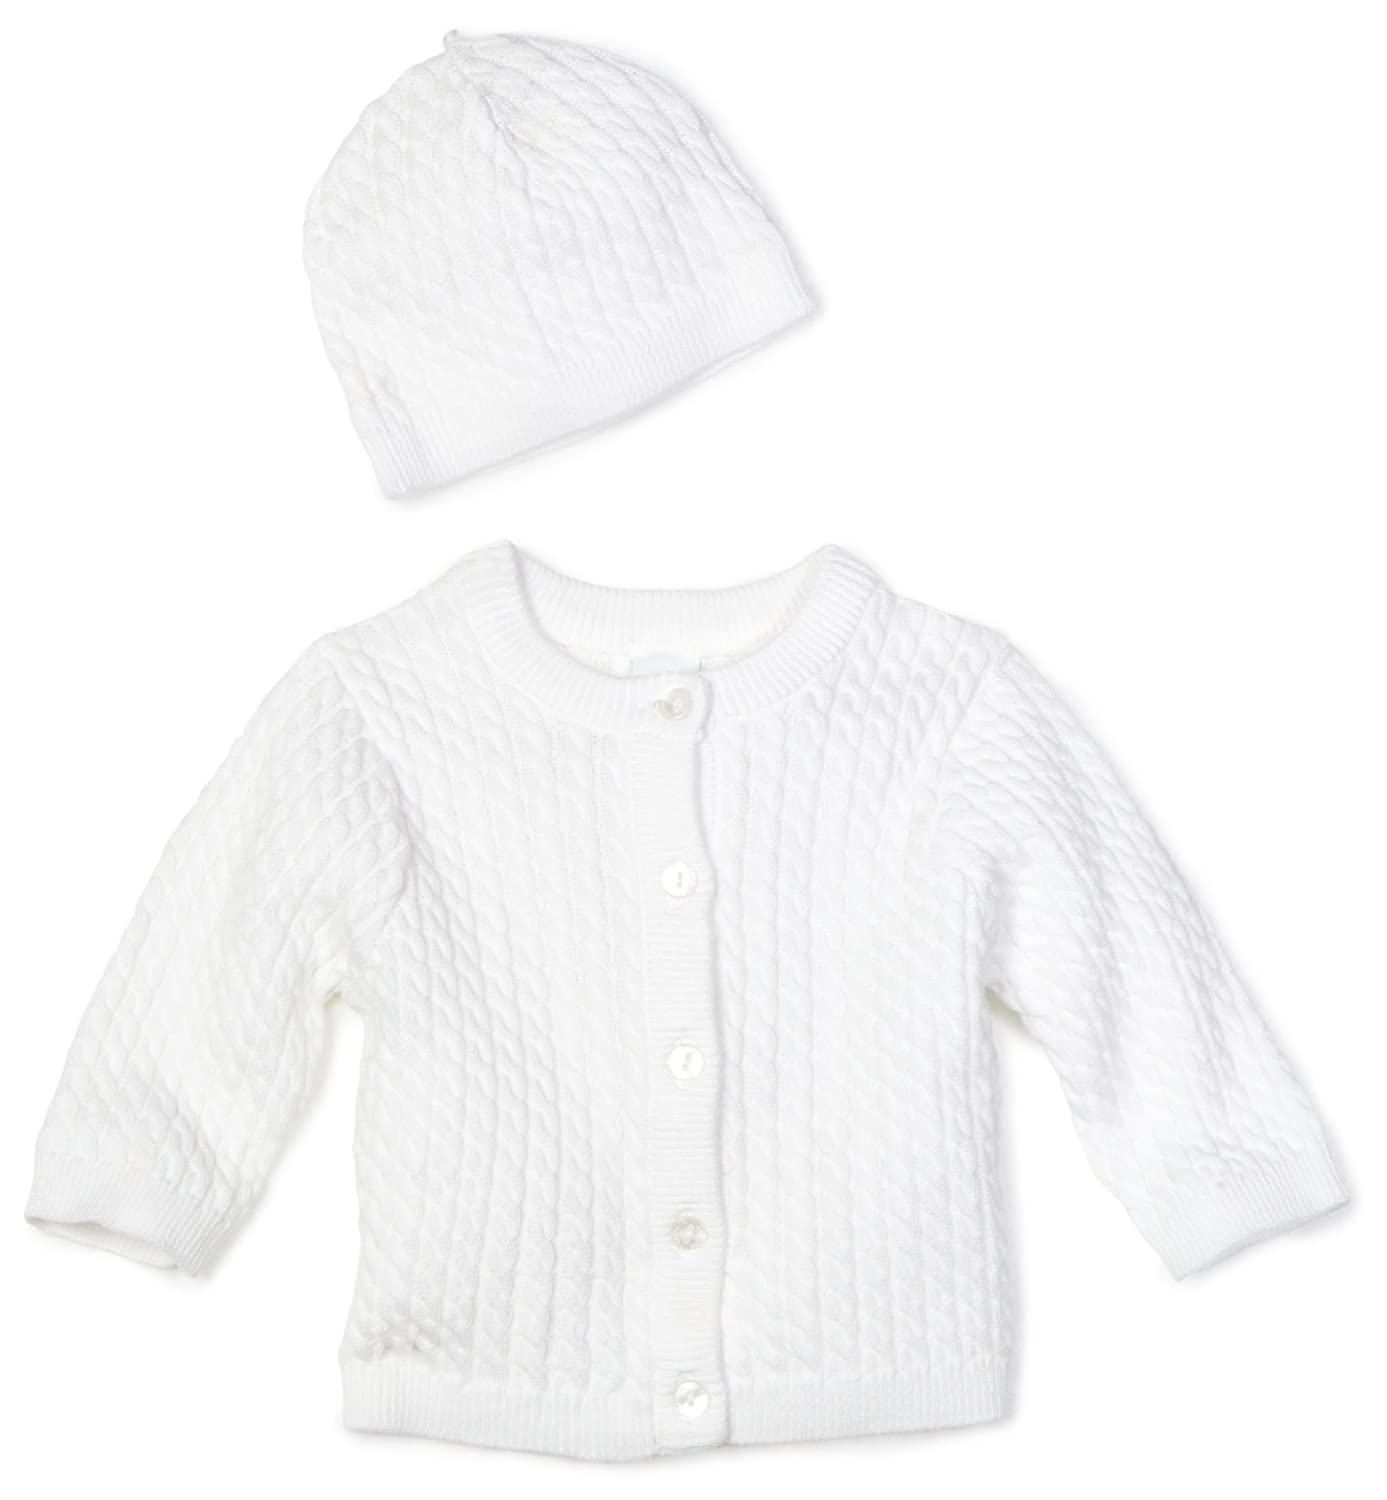 Amazon.com: Little Me Unisex-baby Newborn Lovable Cable Sweater ...